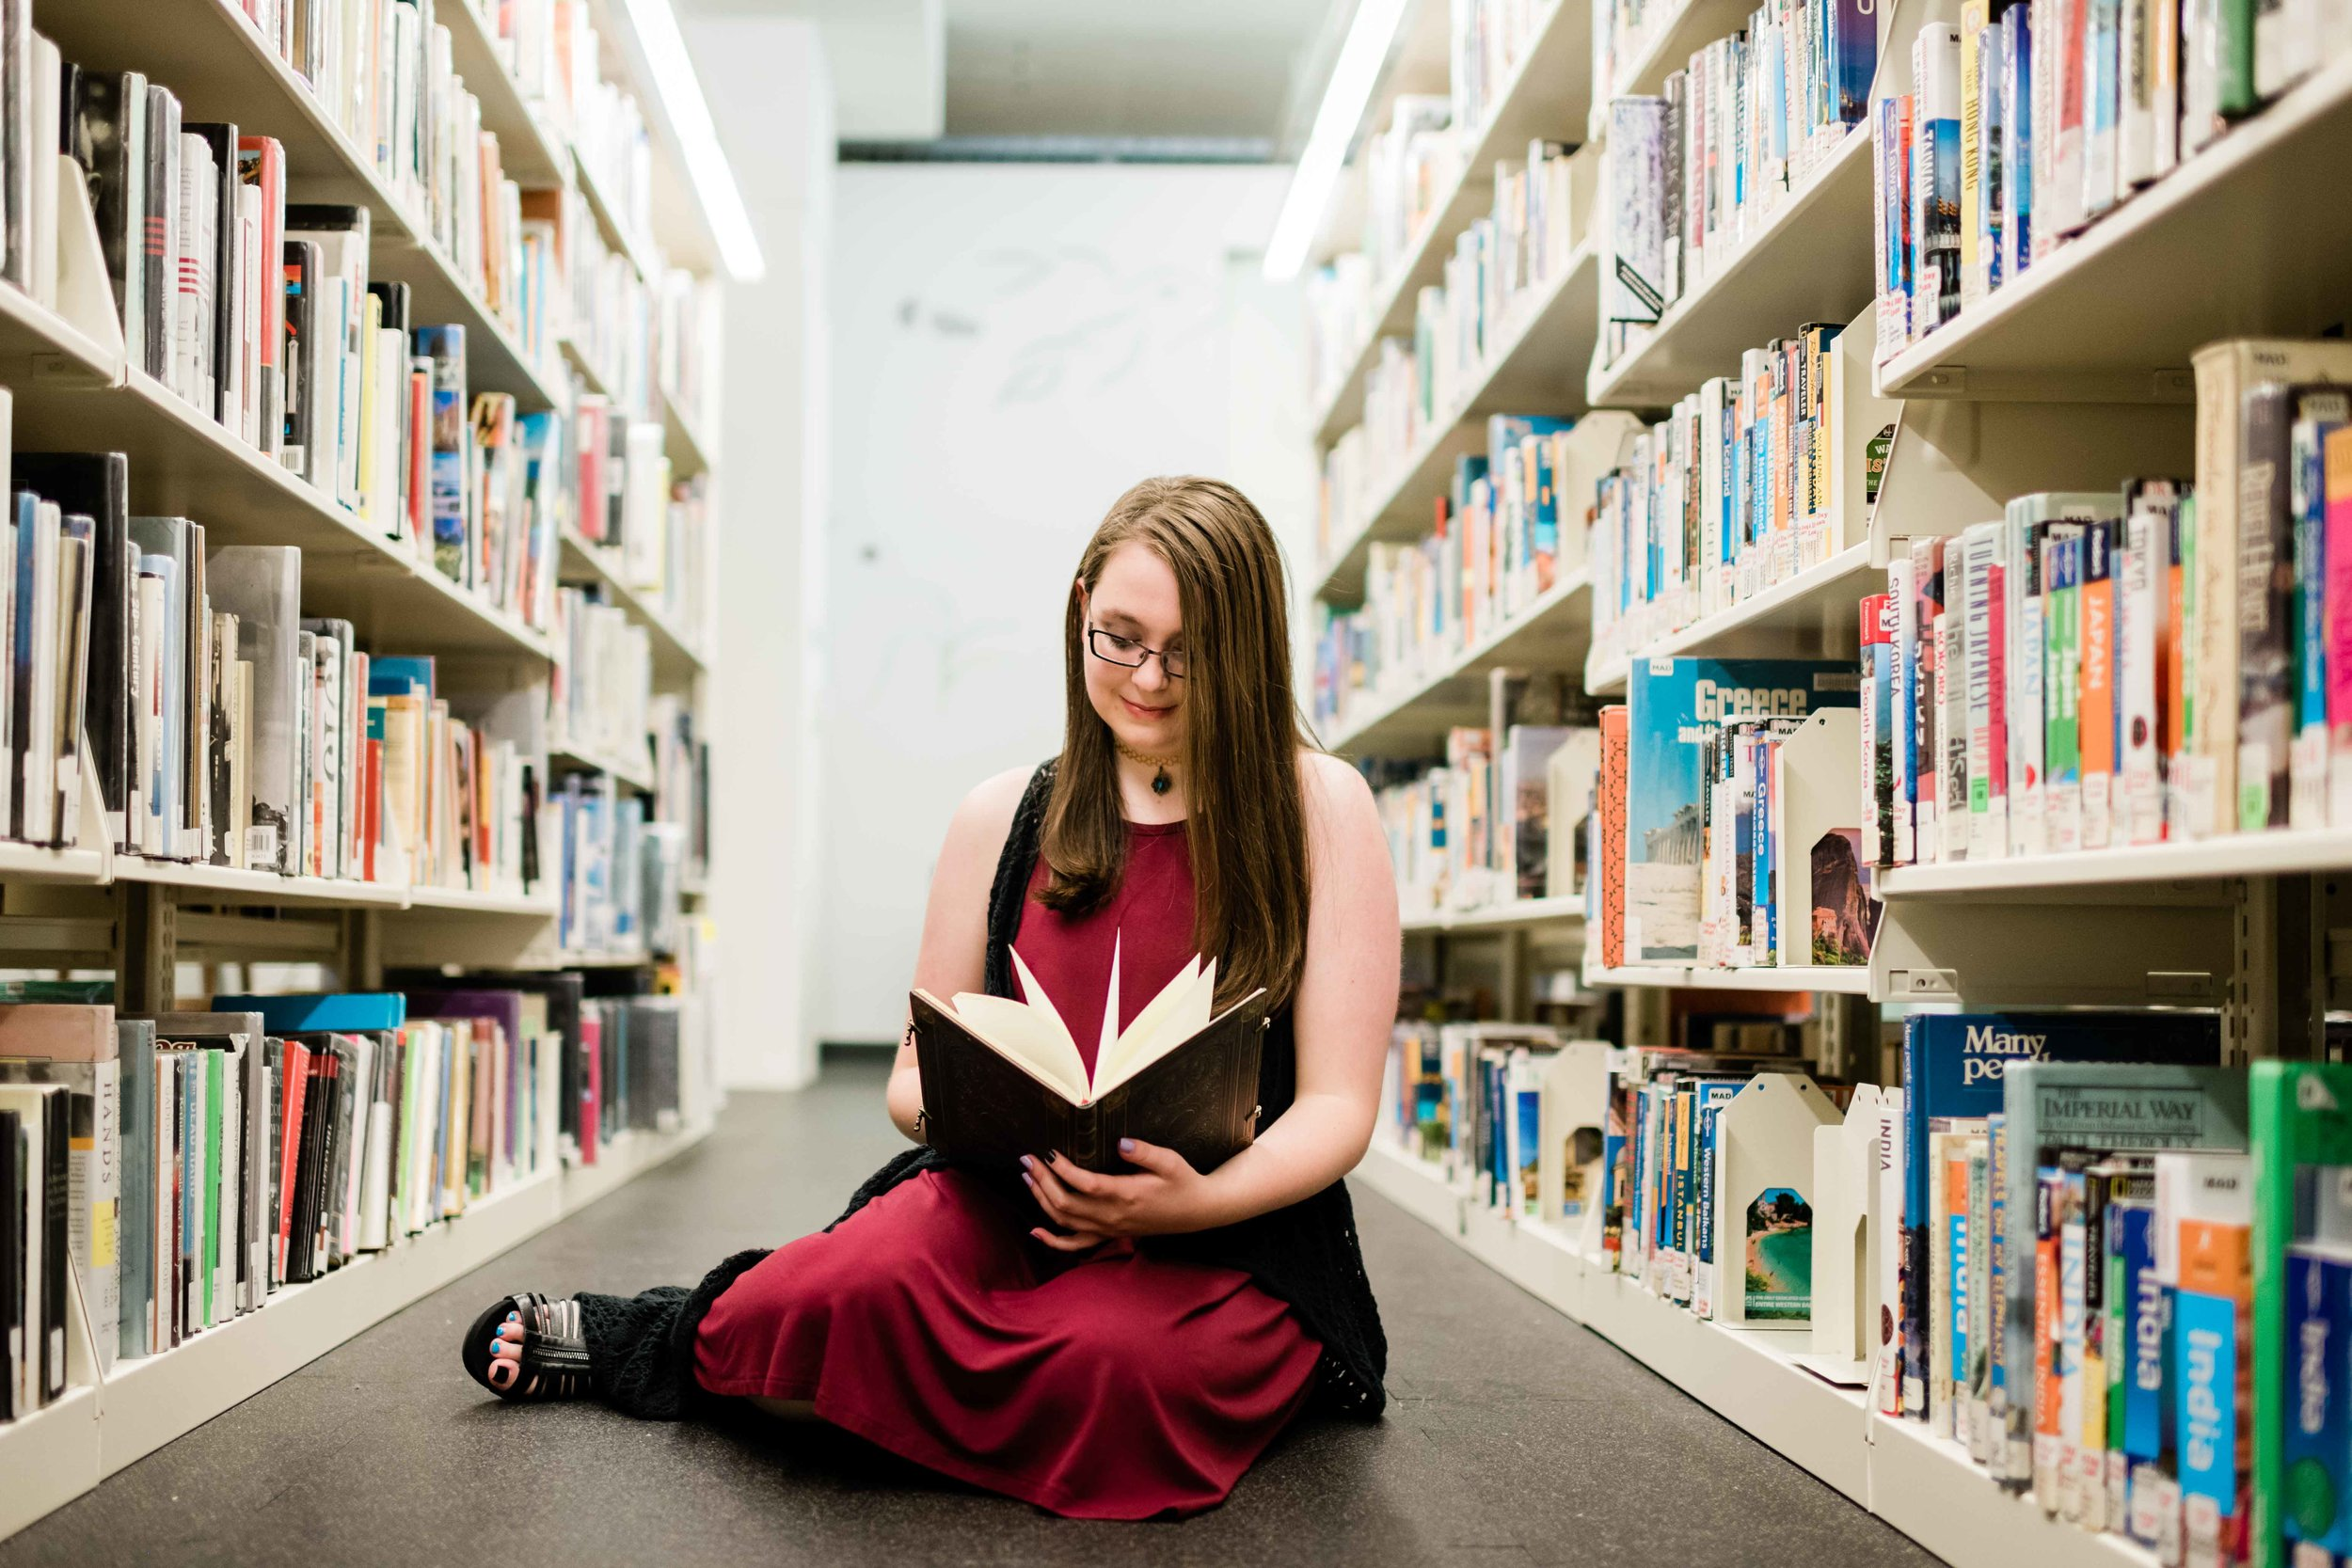 High school senior reading a book in the stacks at Madison Public Library